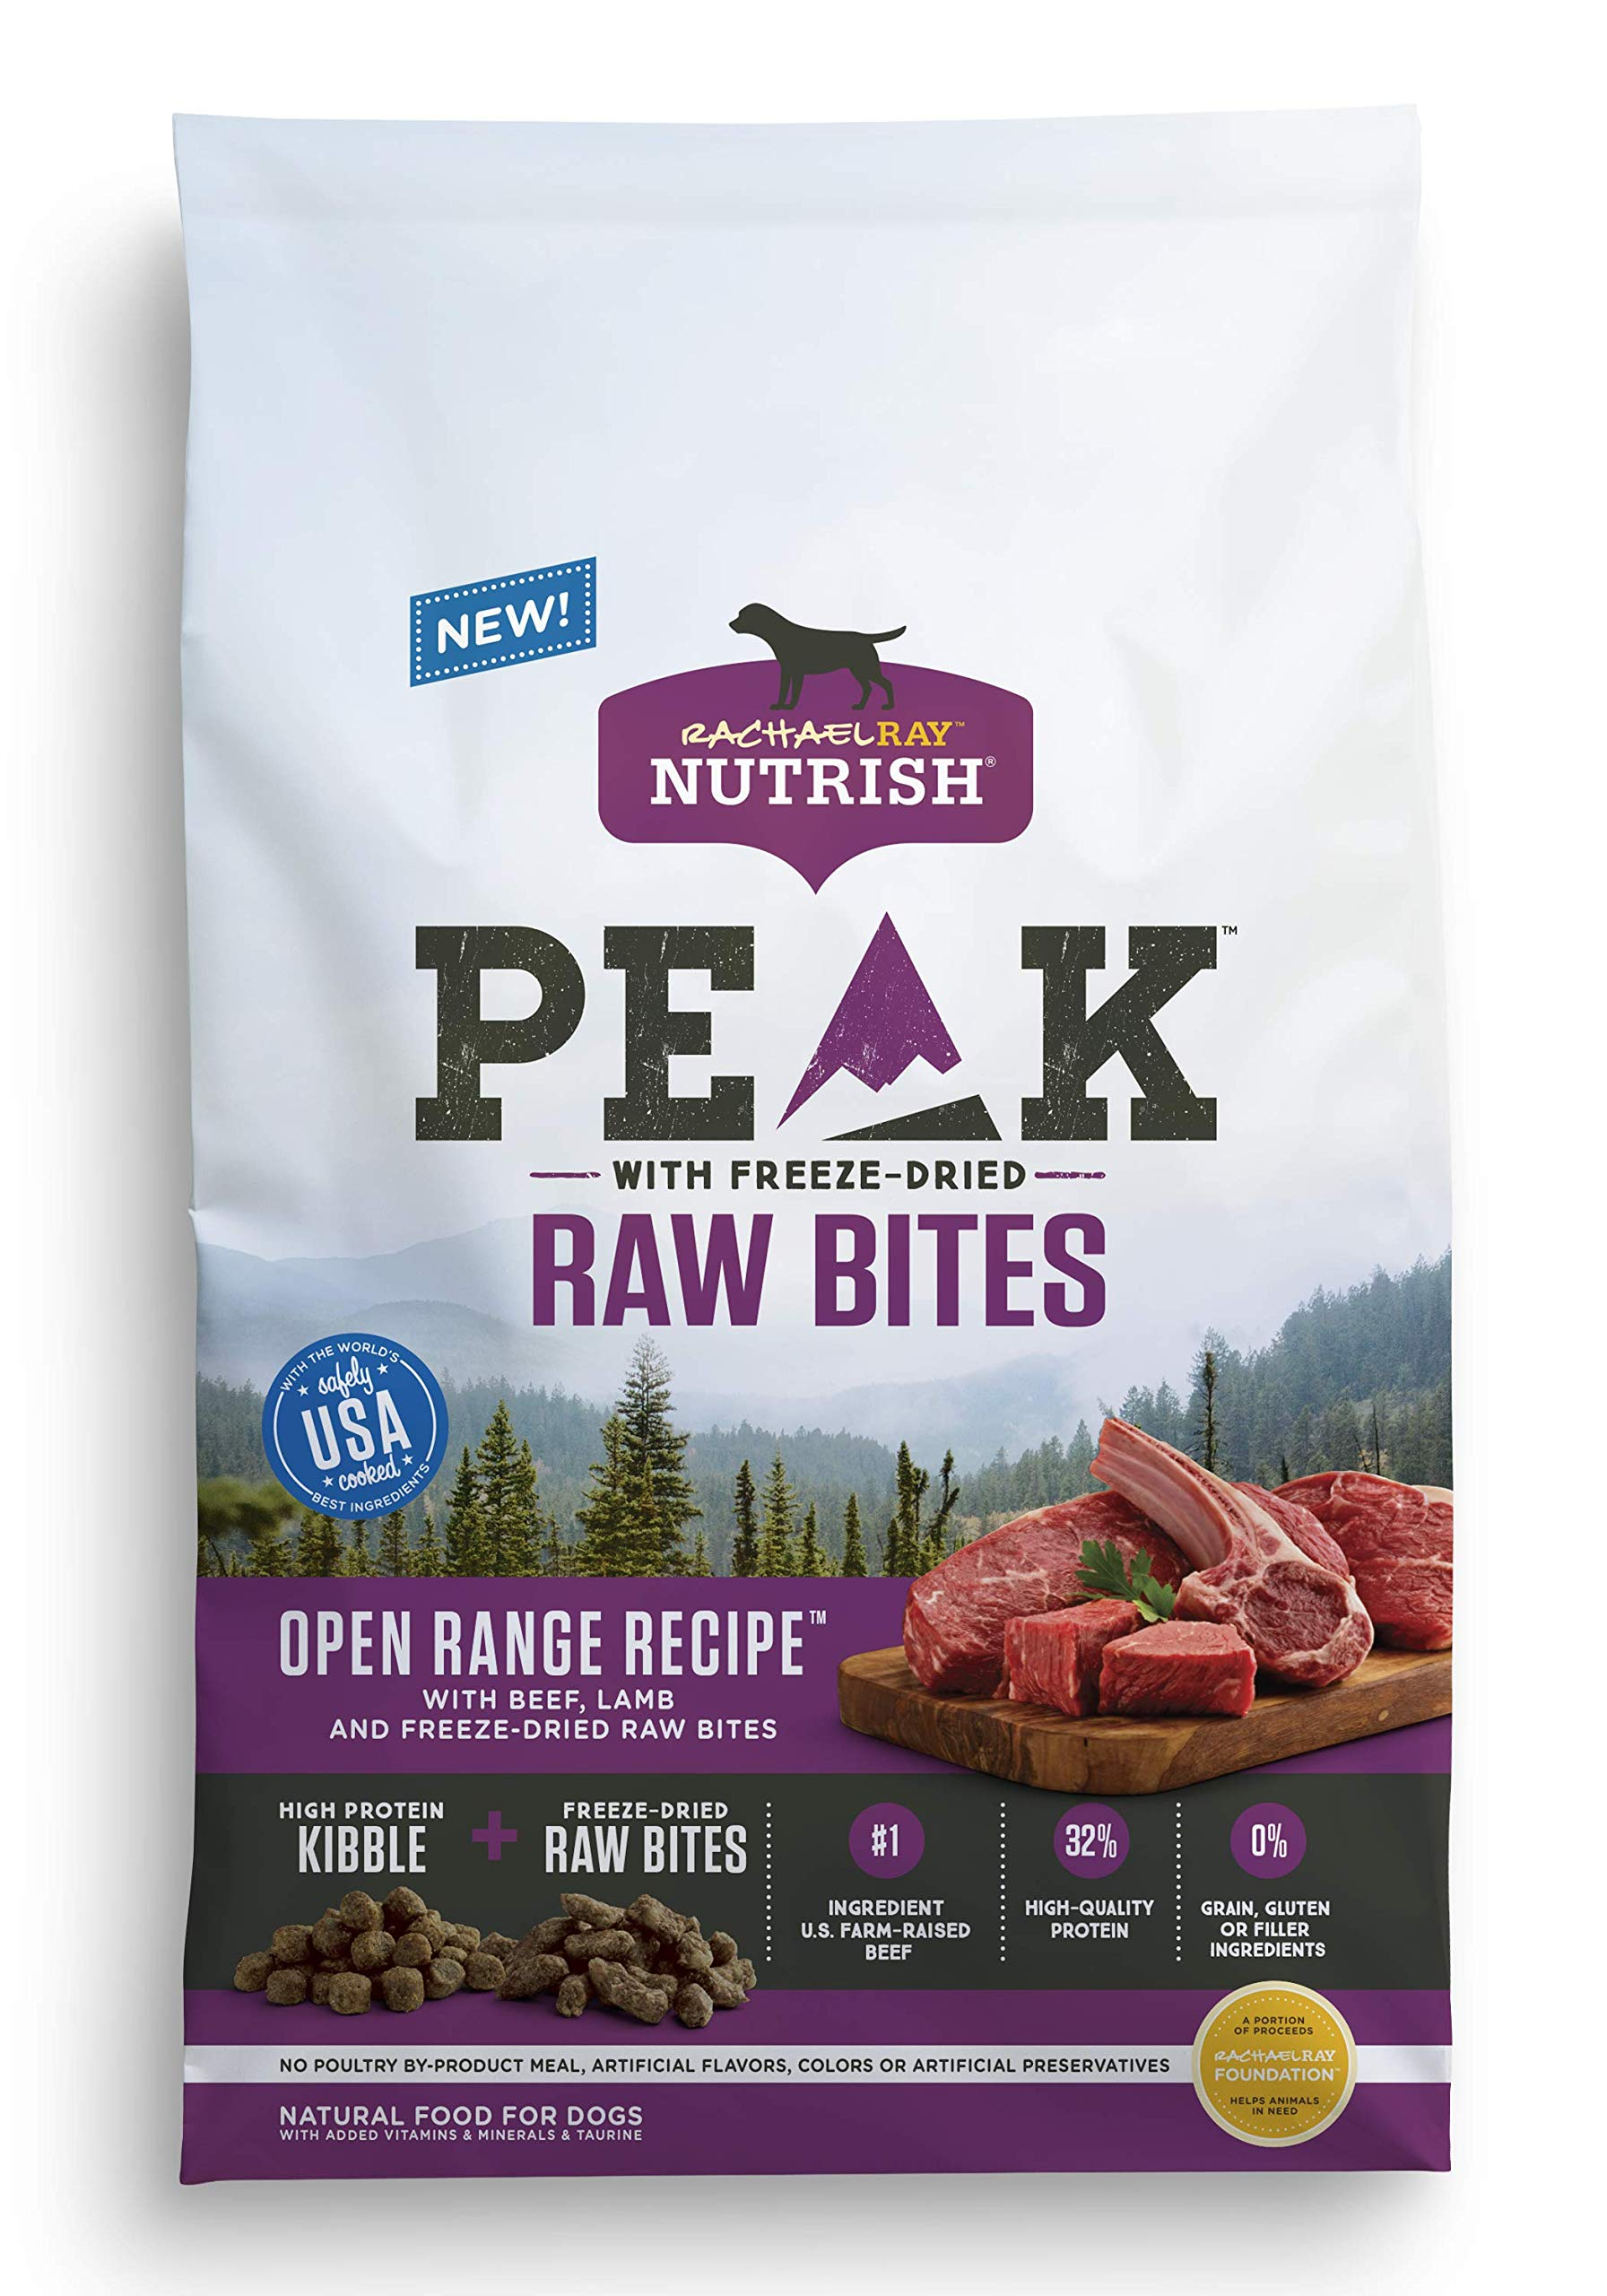 Rachael Ray Nutrish PEAK Open Range Recipe with Beef, Lamb and Freeze-Dried Raw Bites Dry Dog Food, 23 Pounds by Rachael Ray Nutrish